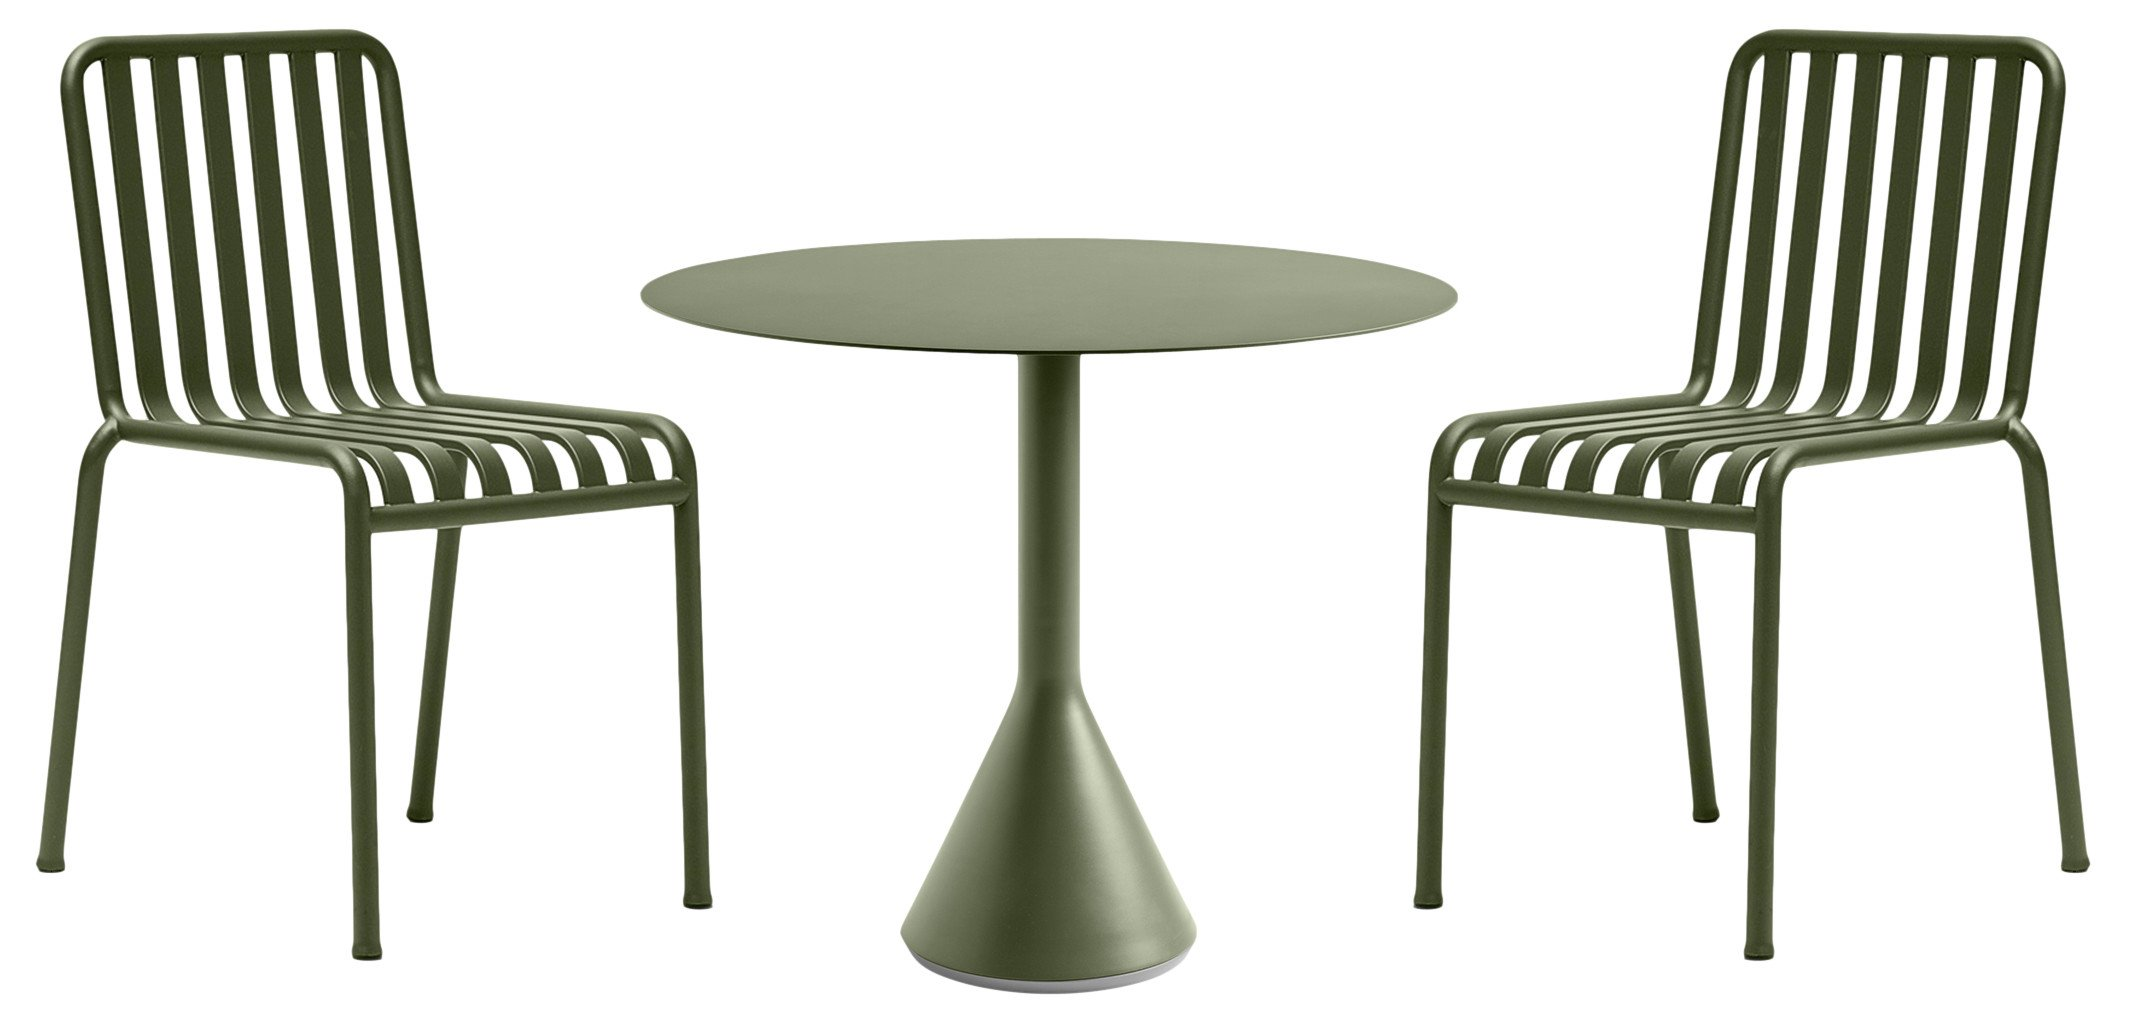 Set of Garden Furniture Palissade Table and 2 Chairs by R. &. E. Bouroullec for HAY - 515635 - photo